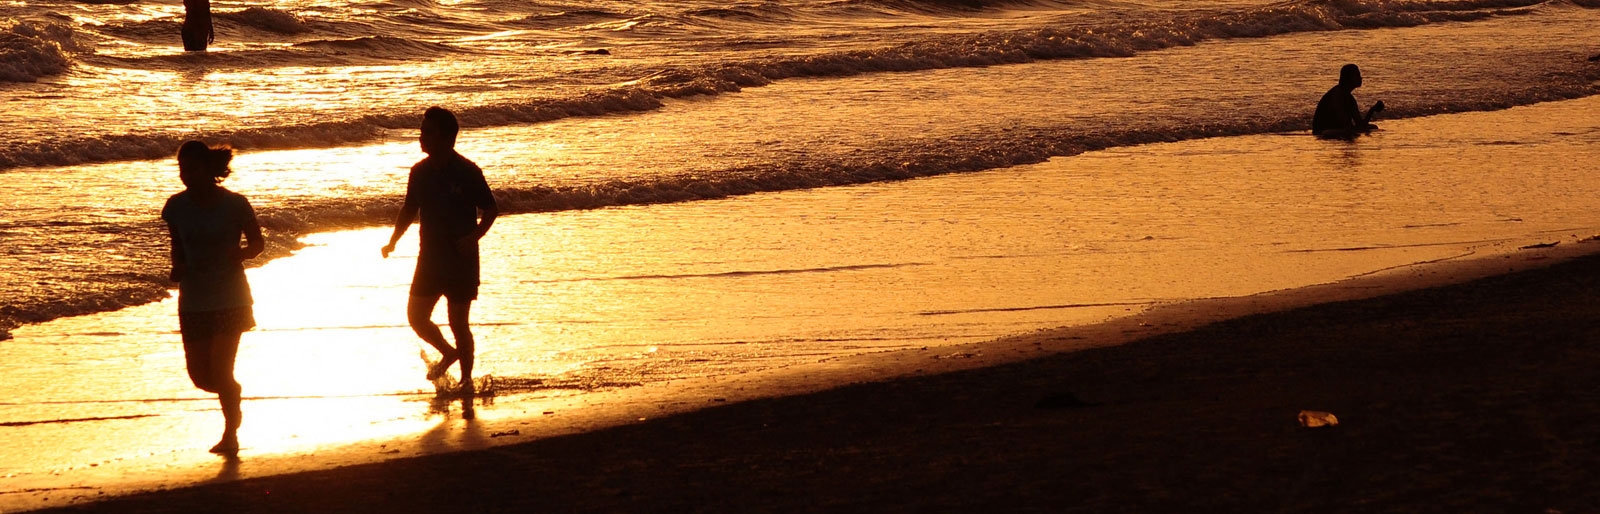 people enjoying waves rolling in on a beach with the sunset reflecting off the water